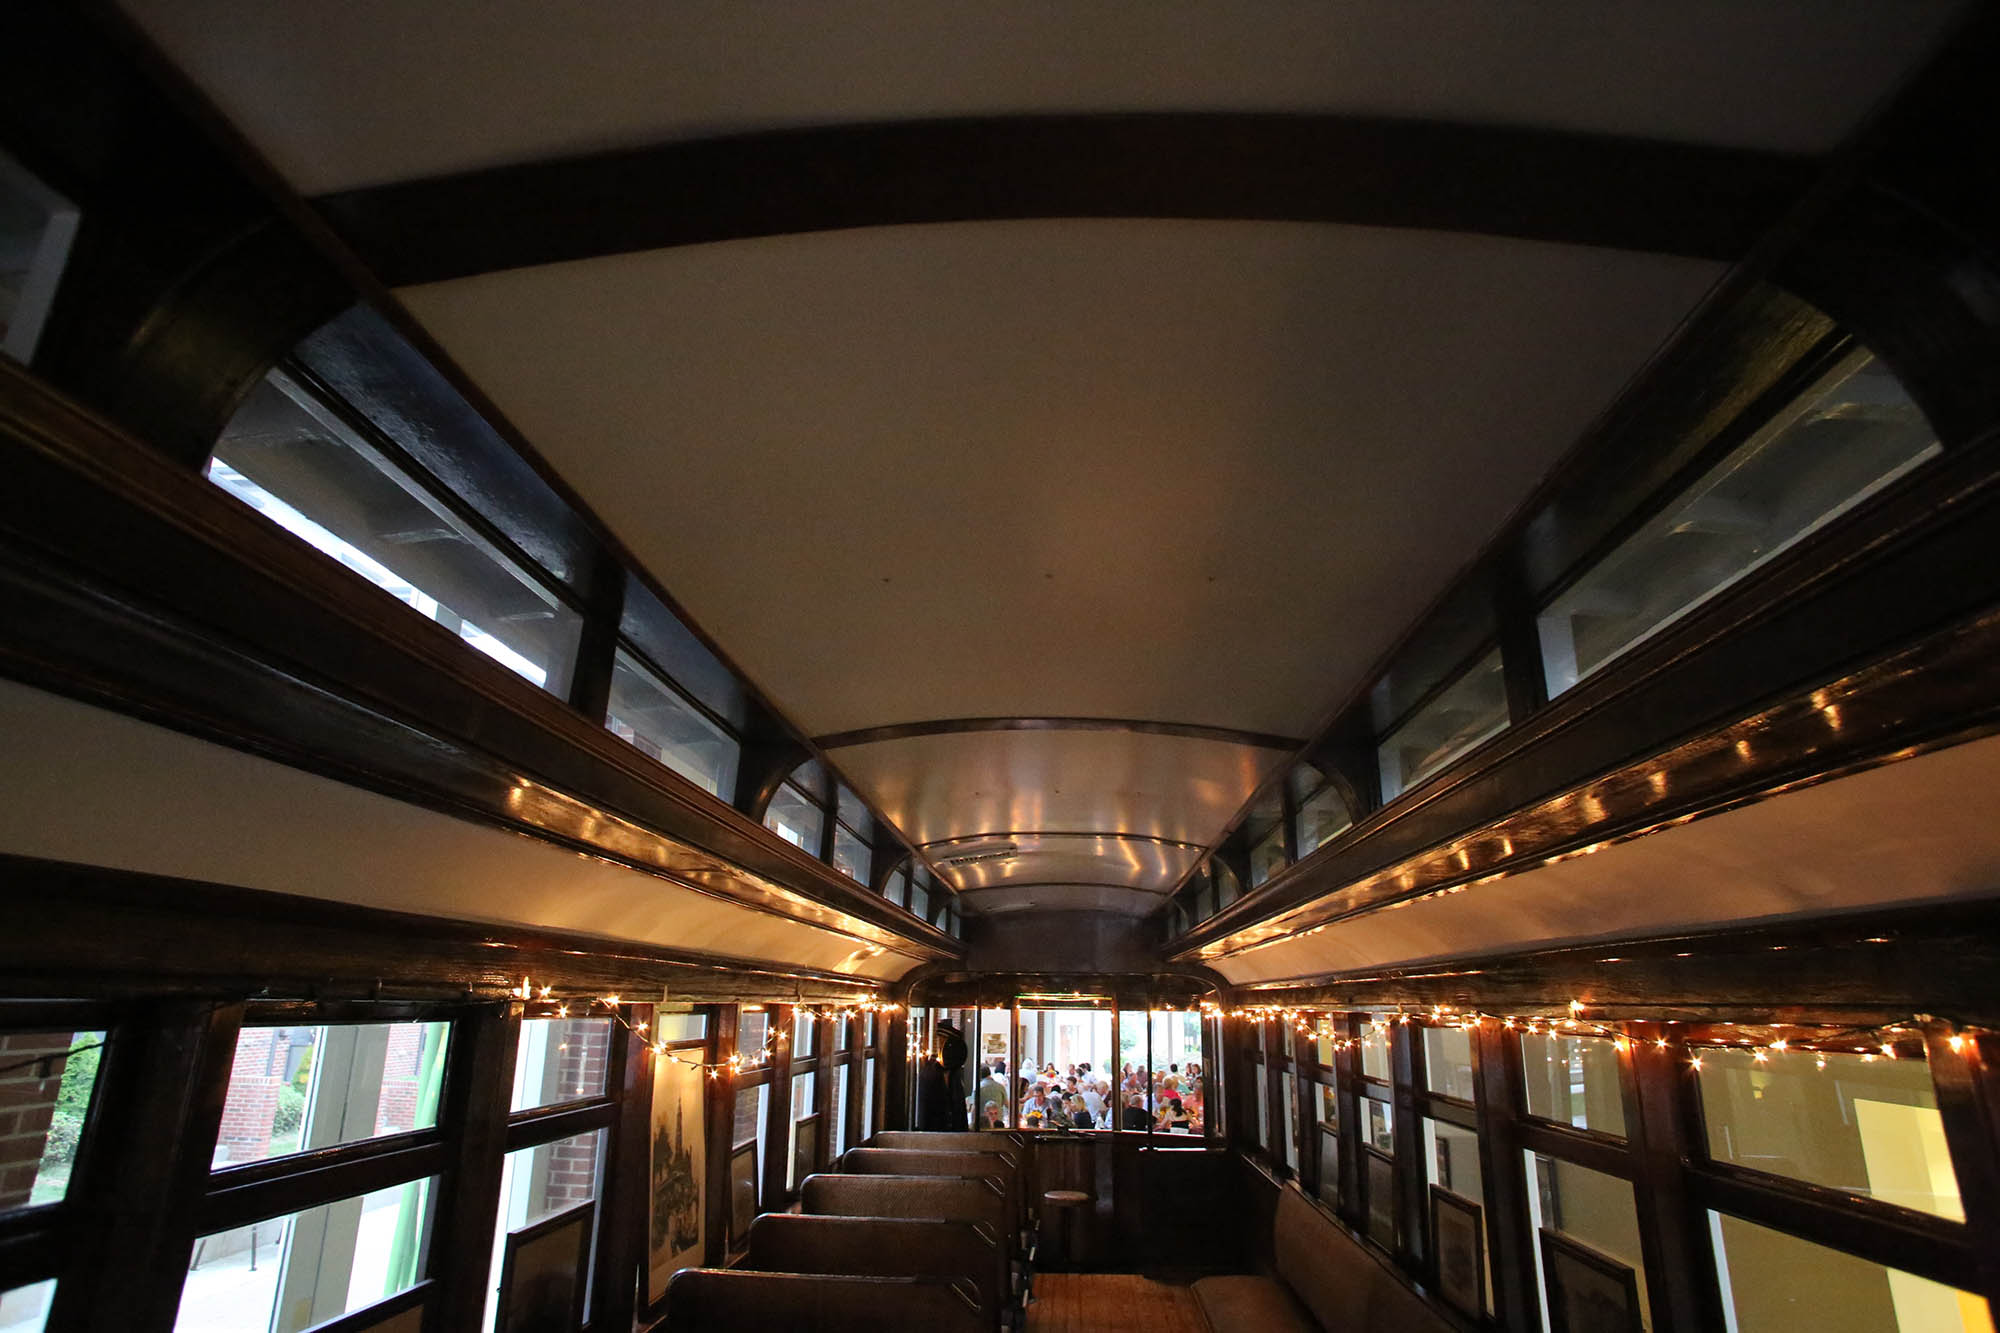 inside the trolley